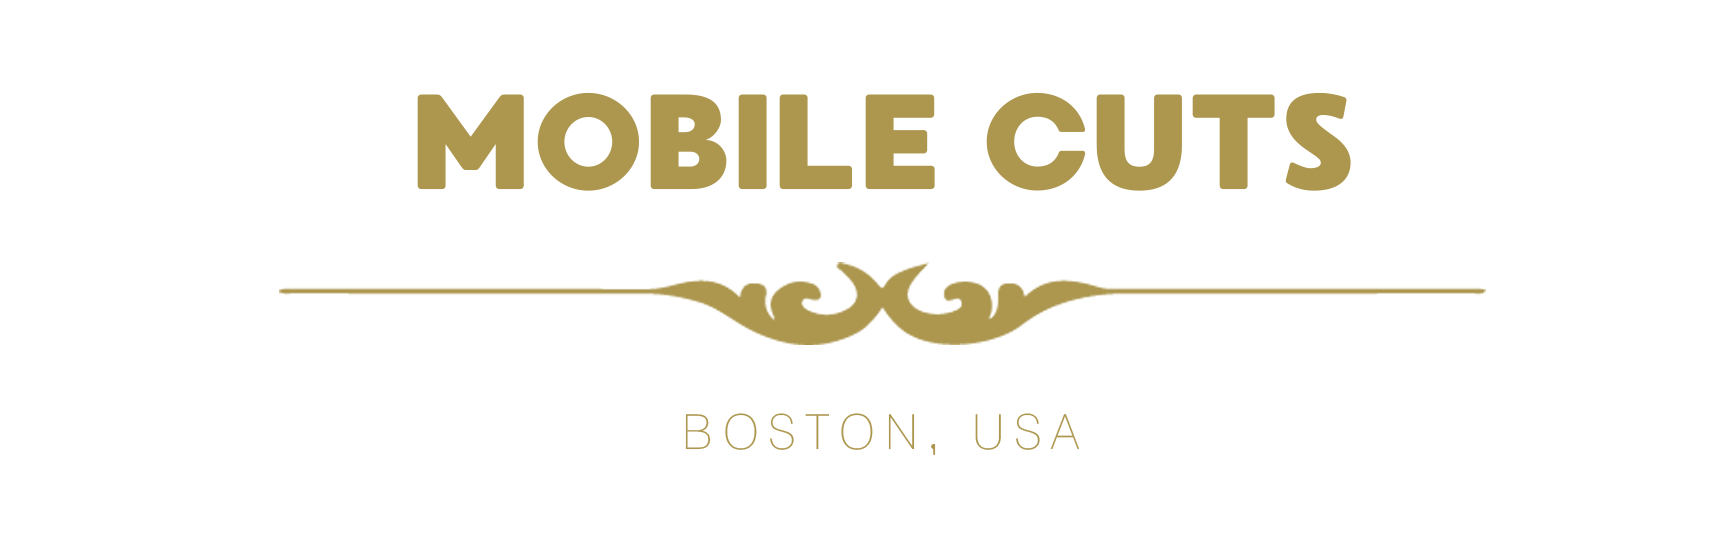 Mobile Cuts Logo 01.png